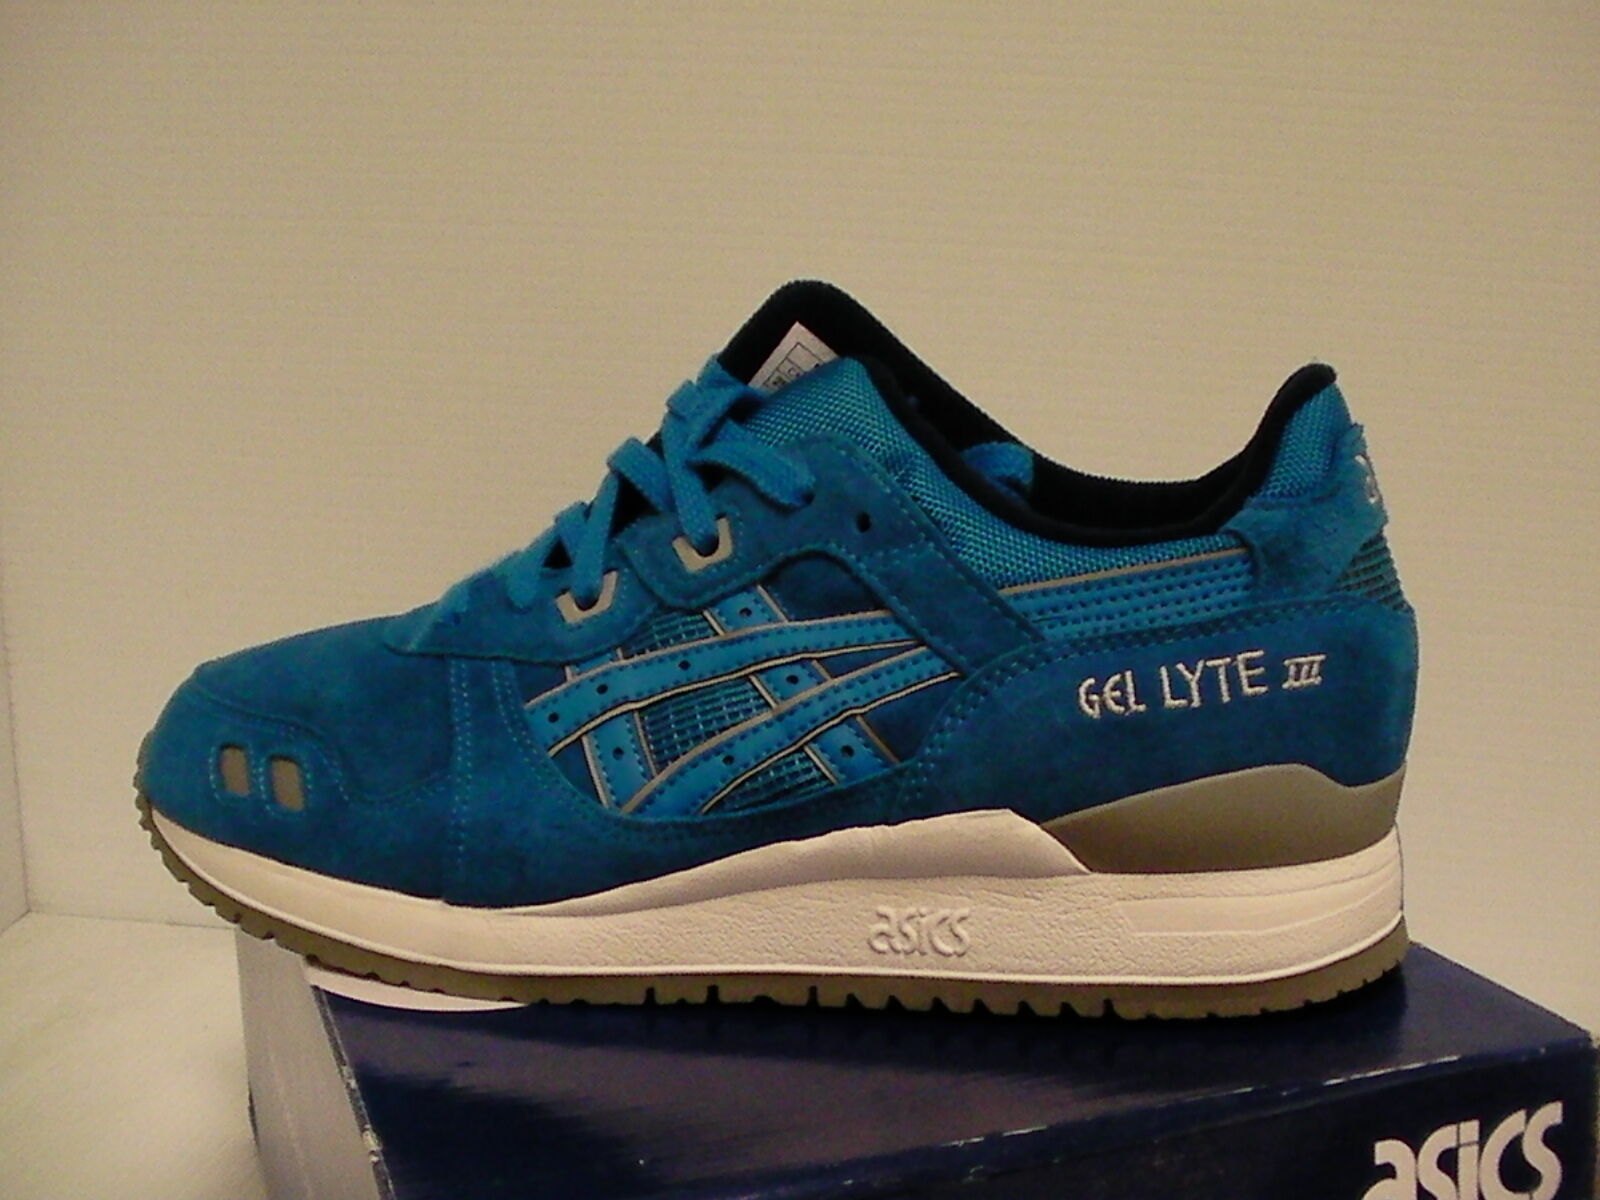 Asics men running shoes gel-lyte iii bluee size 8 us new with box